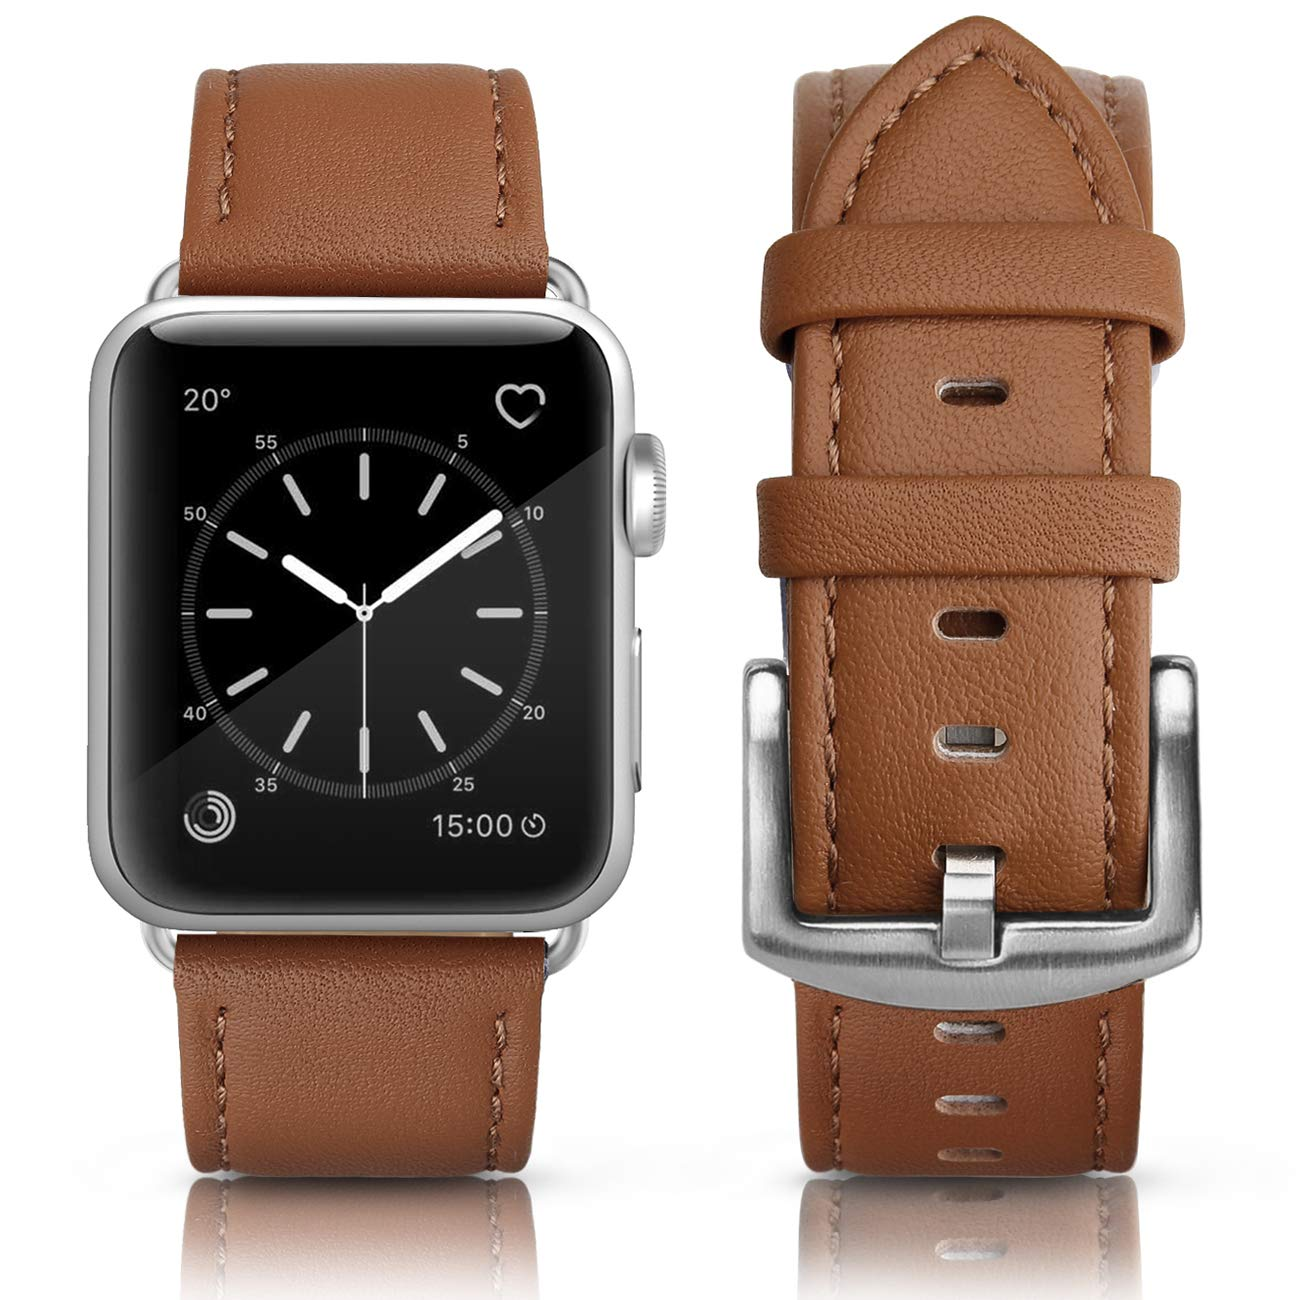 SWEES Leather Band Compatible iWatch 42mm 44mm, Genuine Leather Retro  Vintage Wristband Compatible iWatch Series 4, Series 3, Series 2, Series 1,  ... 84d74a02de6